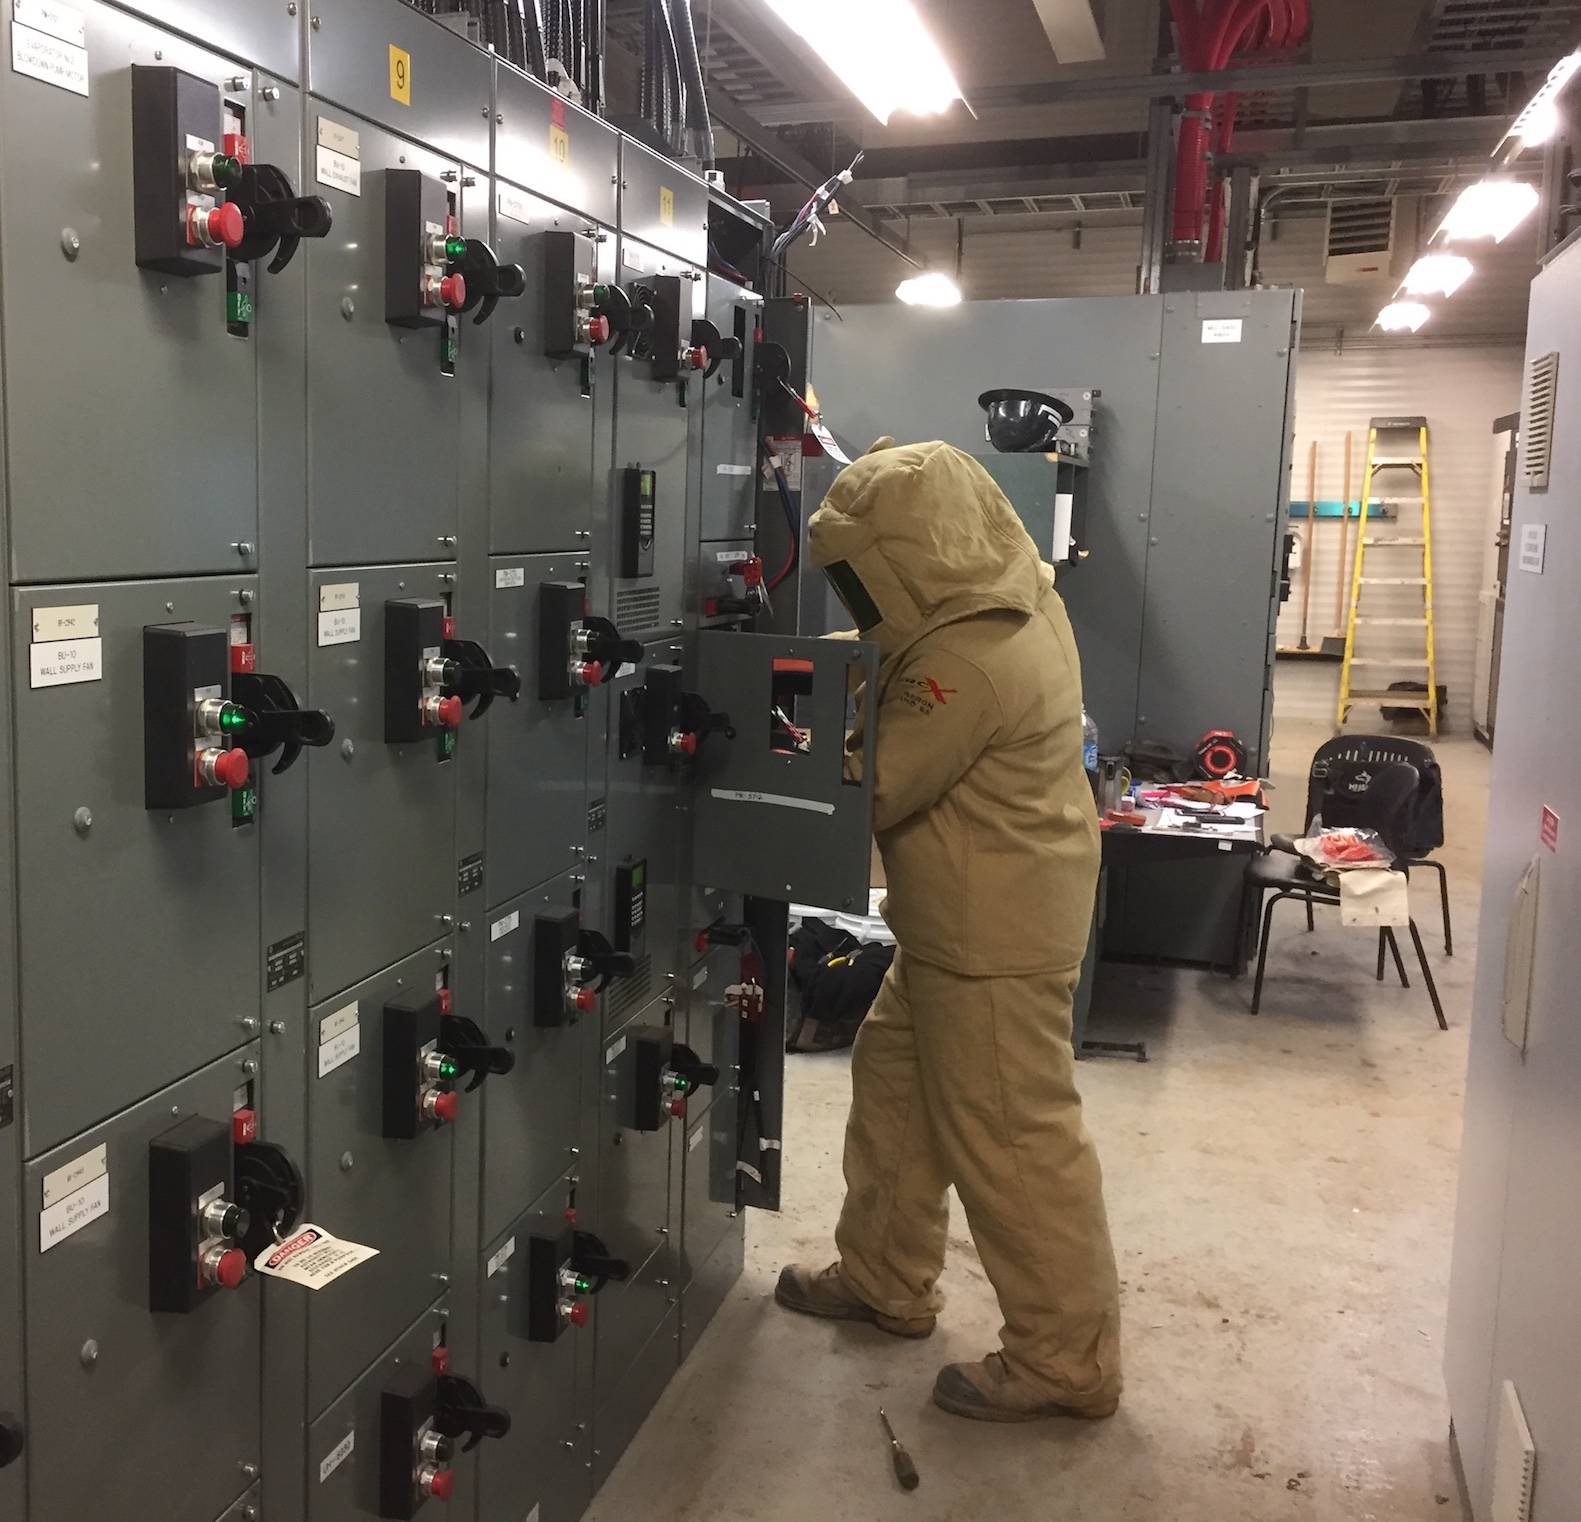 Electrician Safety, Arc Flash Protection Equipment